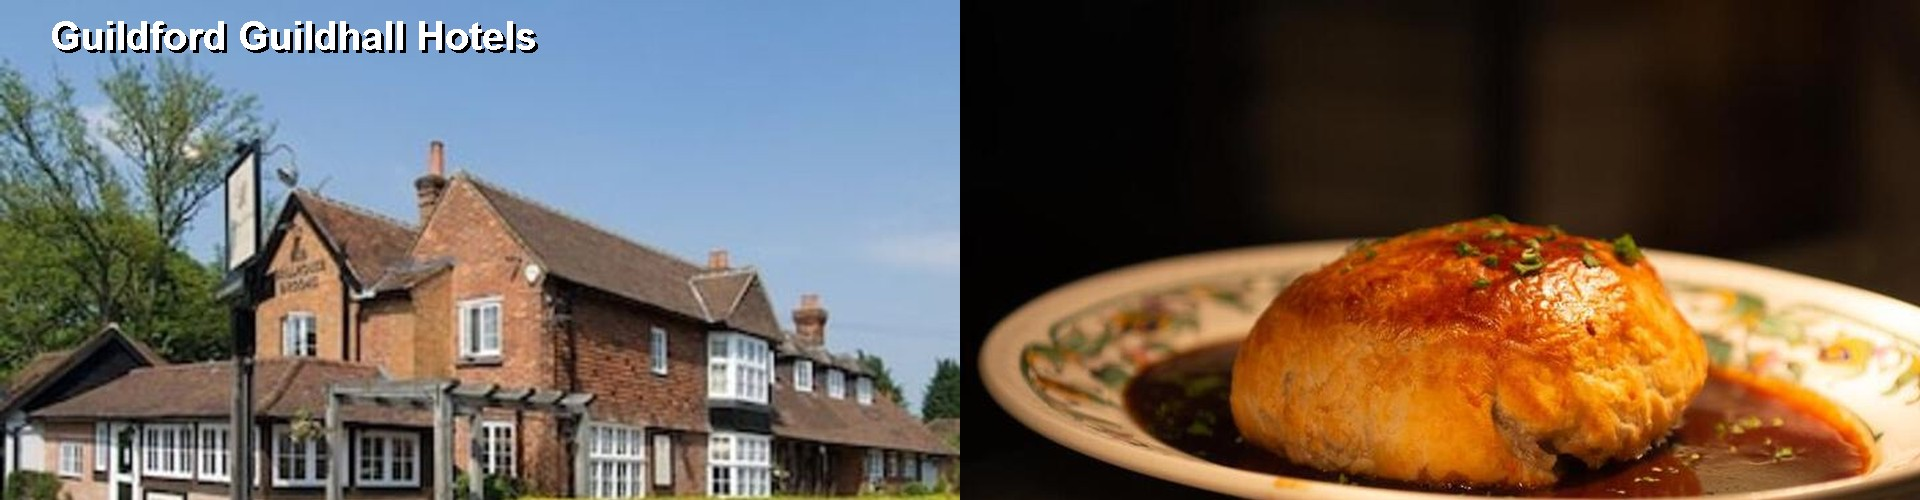 4 Best Hotels near Guildford Guildhall